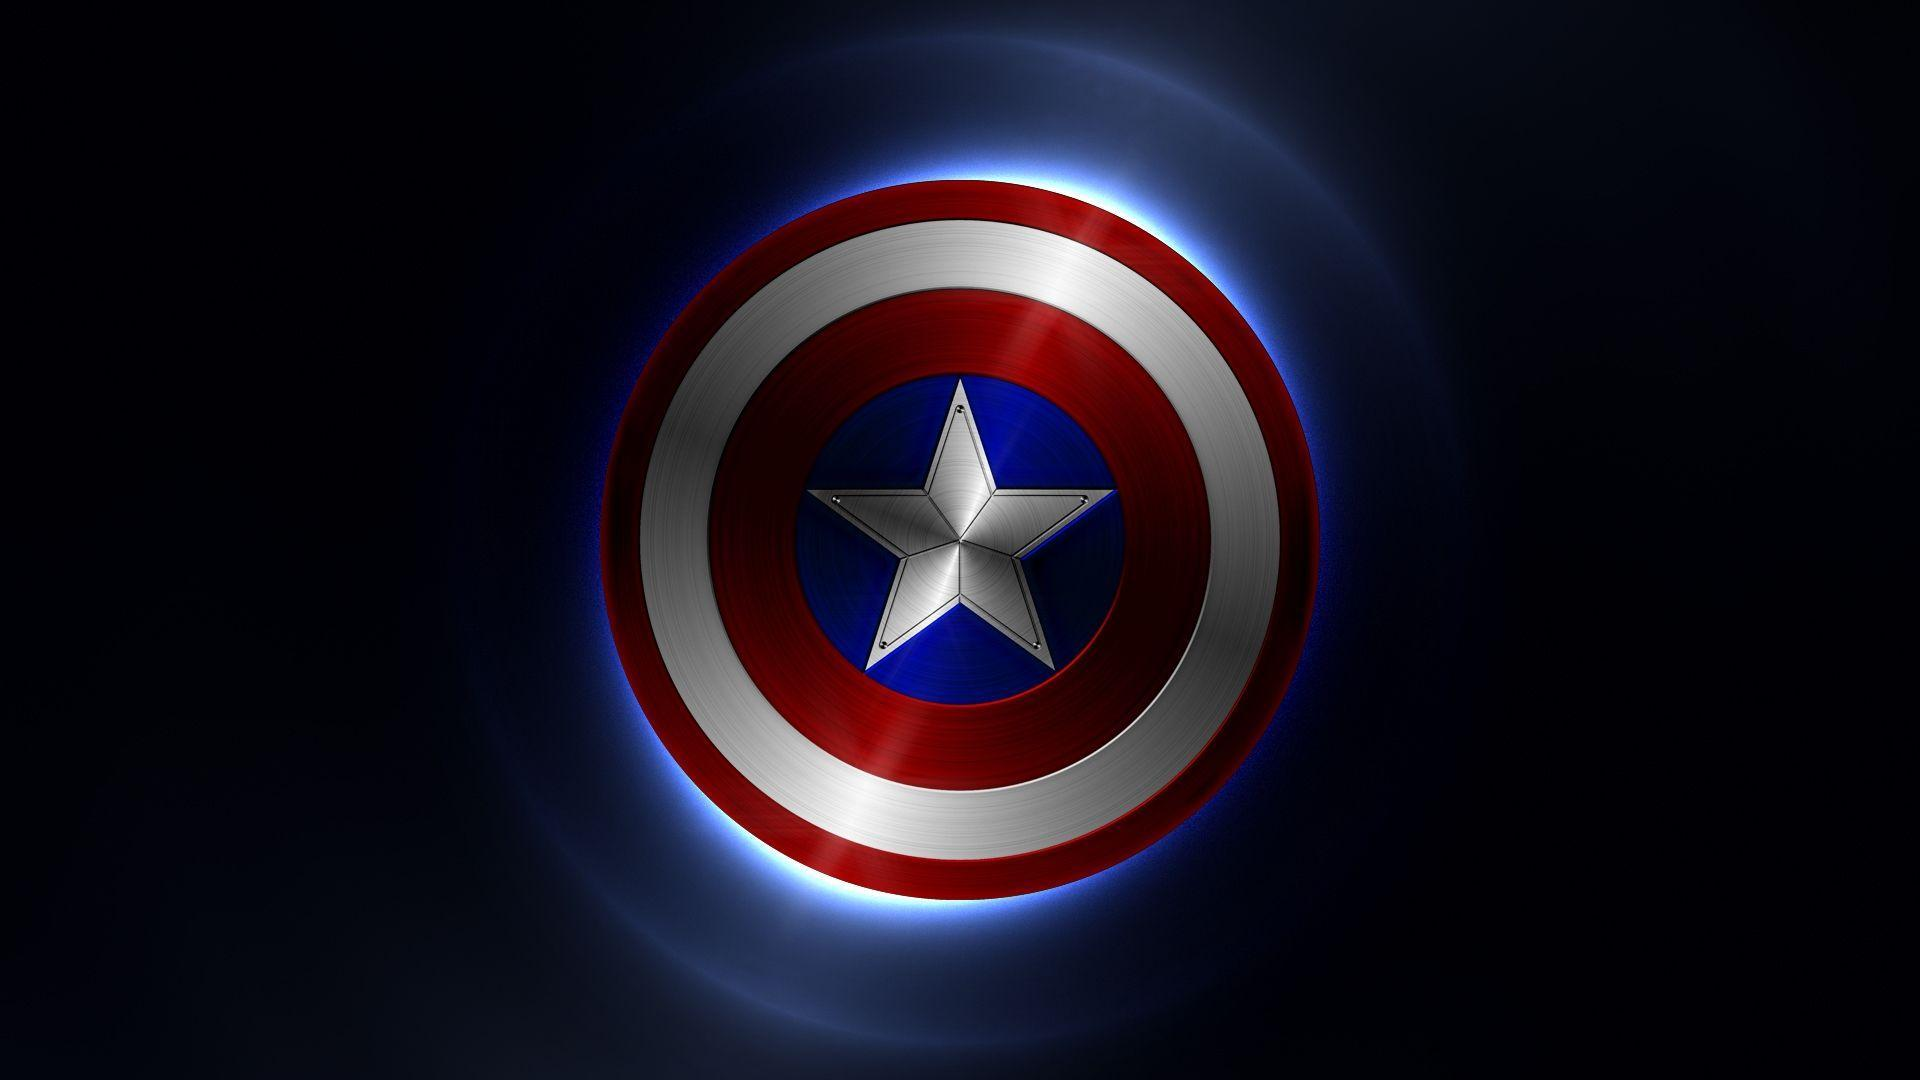 Captain America Hd Wallpapers 1080p 42 Images Dodowallpaper